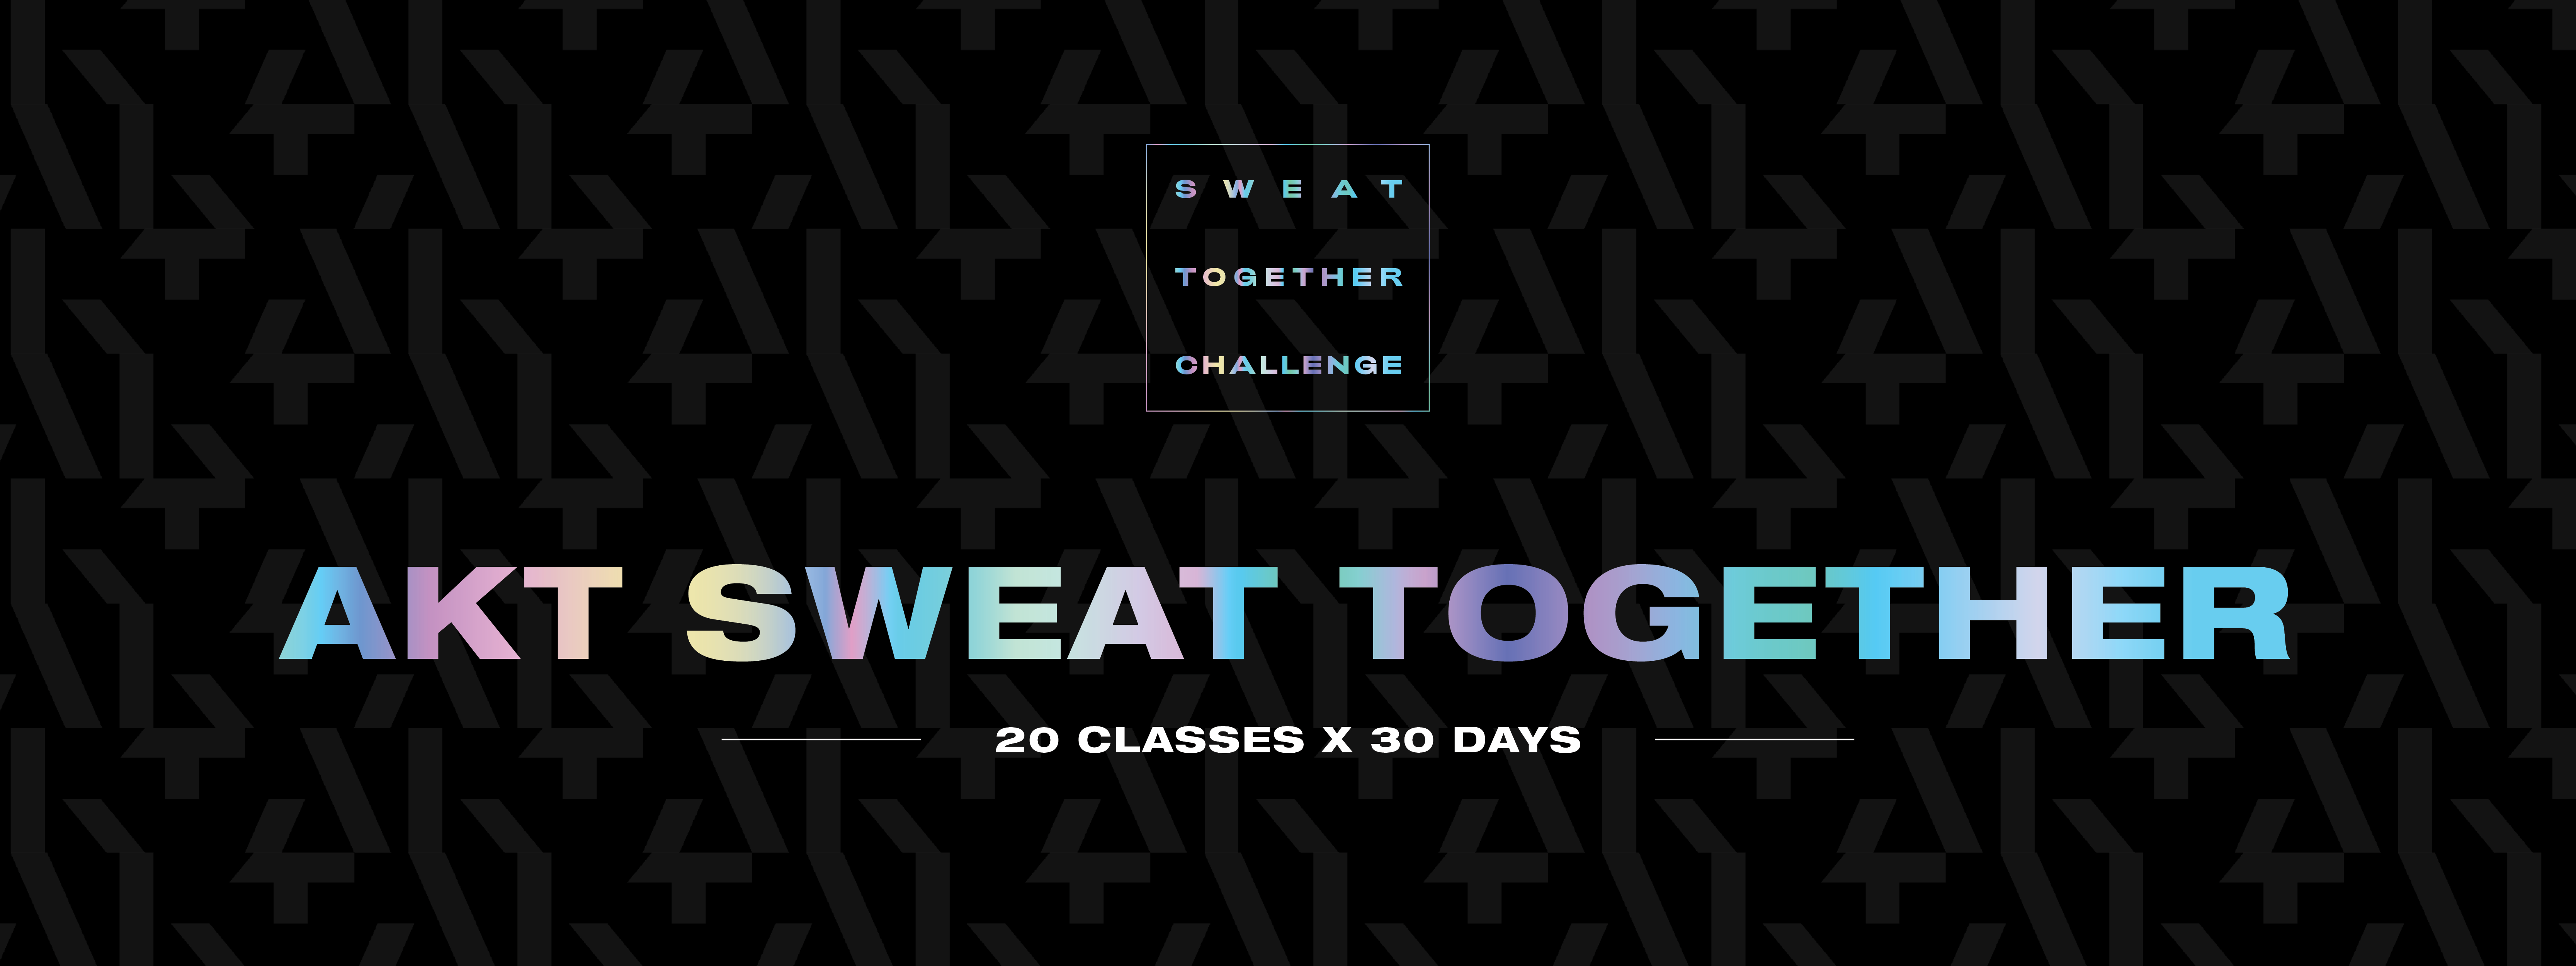 Sweat Together_Registration Page_1600x600